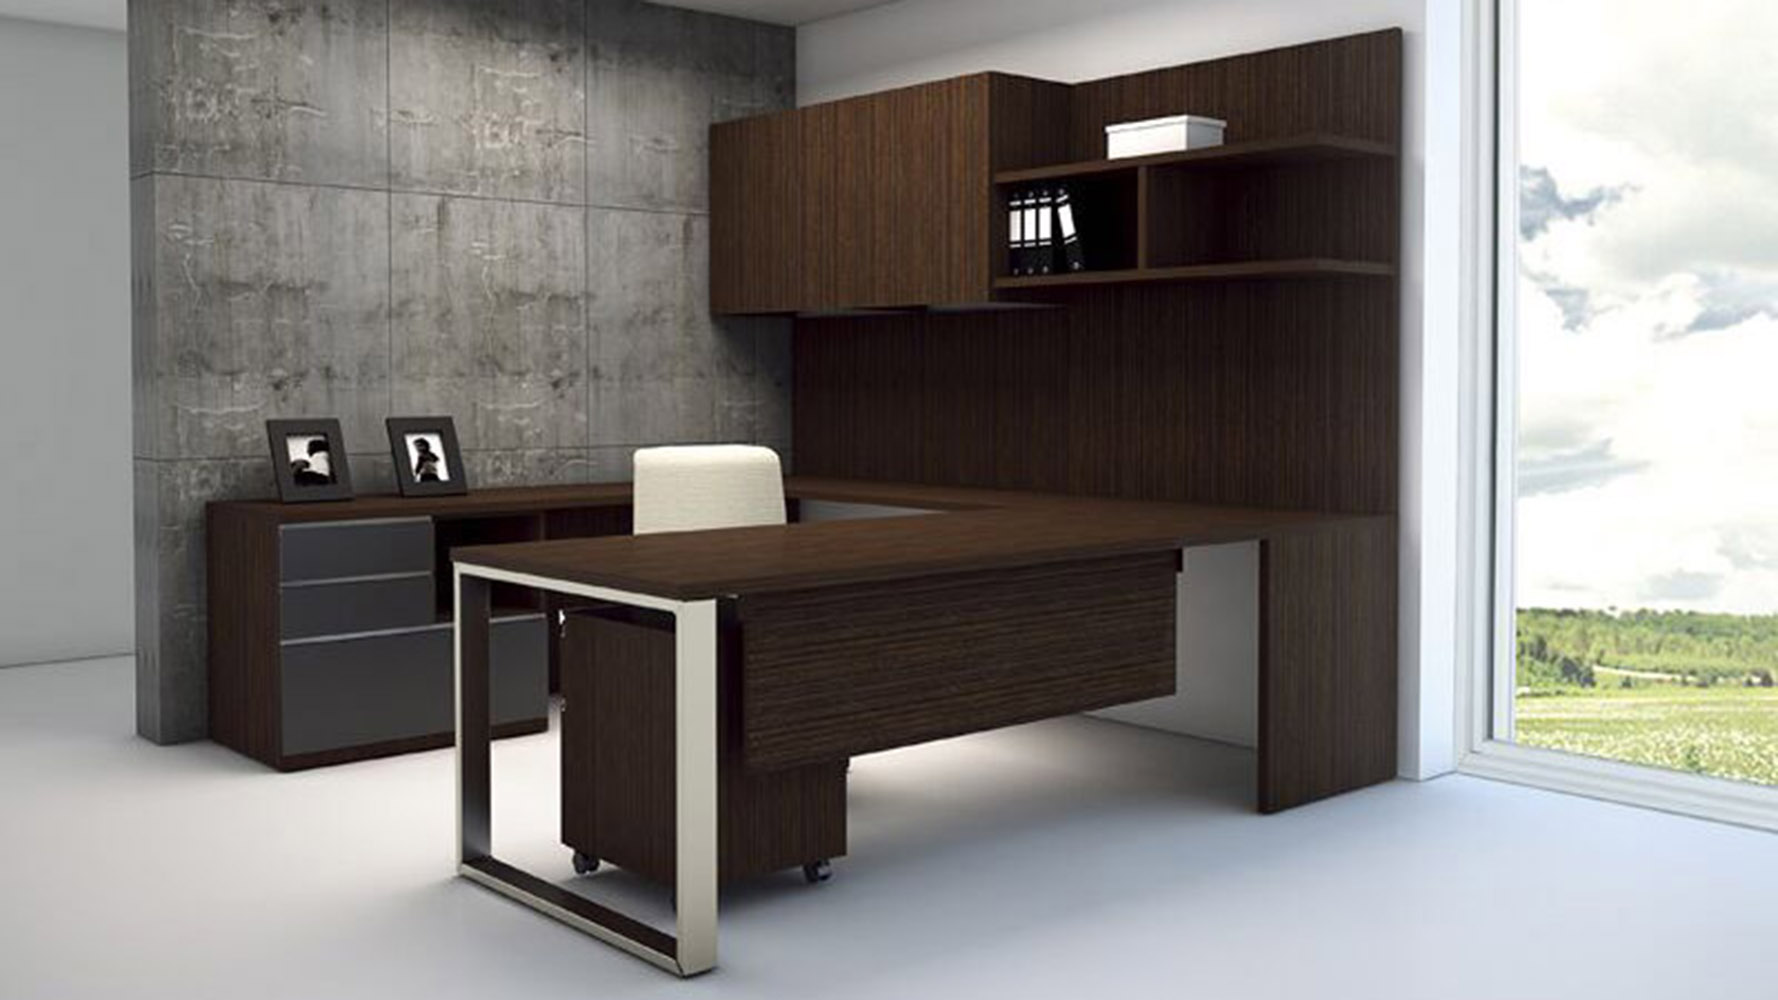 Modern Office Desk: Modern AT Two U-Shaped Desk With Multifile + Storage